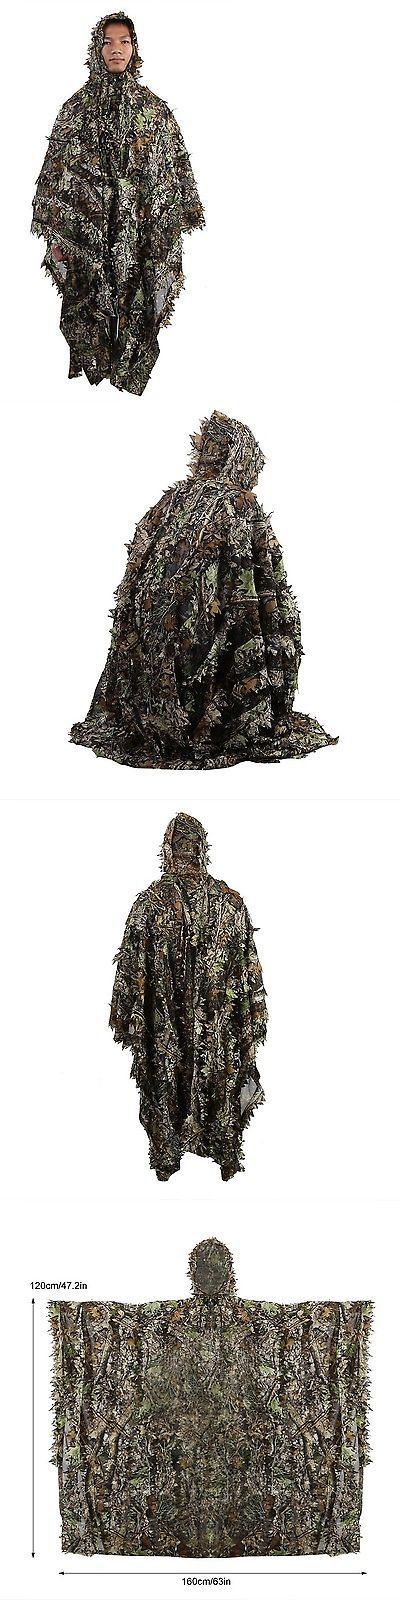 Ghillie Suits 177870: Zicac Outdoor 3D Leaves Camouflage Ghillie Poncho Camo Cape Clo... Free Shipping -> BUY IT NOW ONLY: $38.15 on eBay!